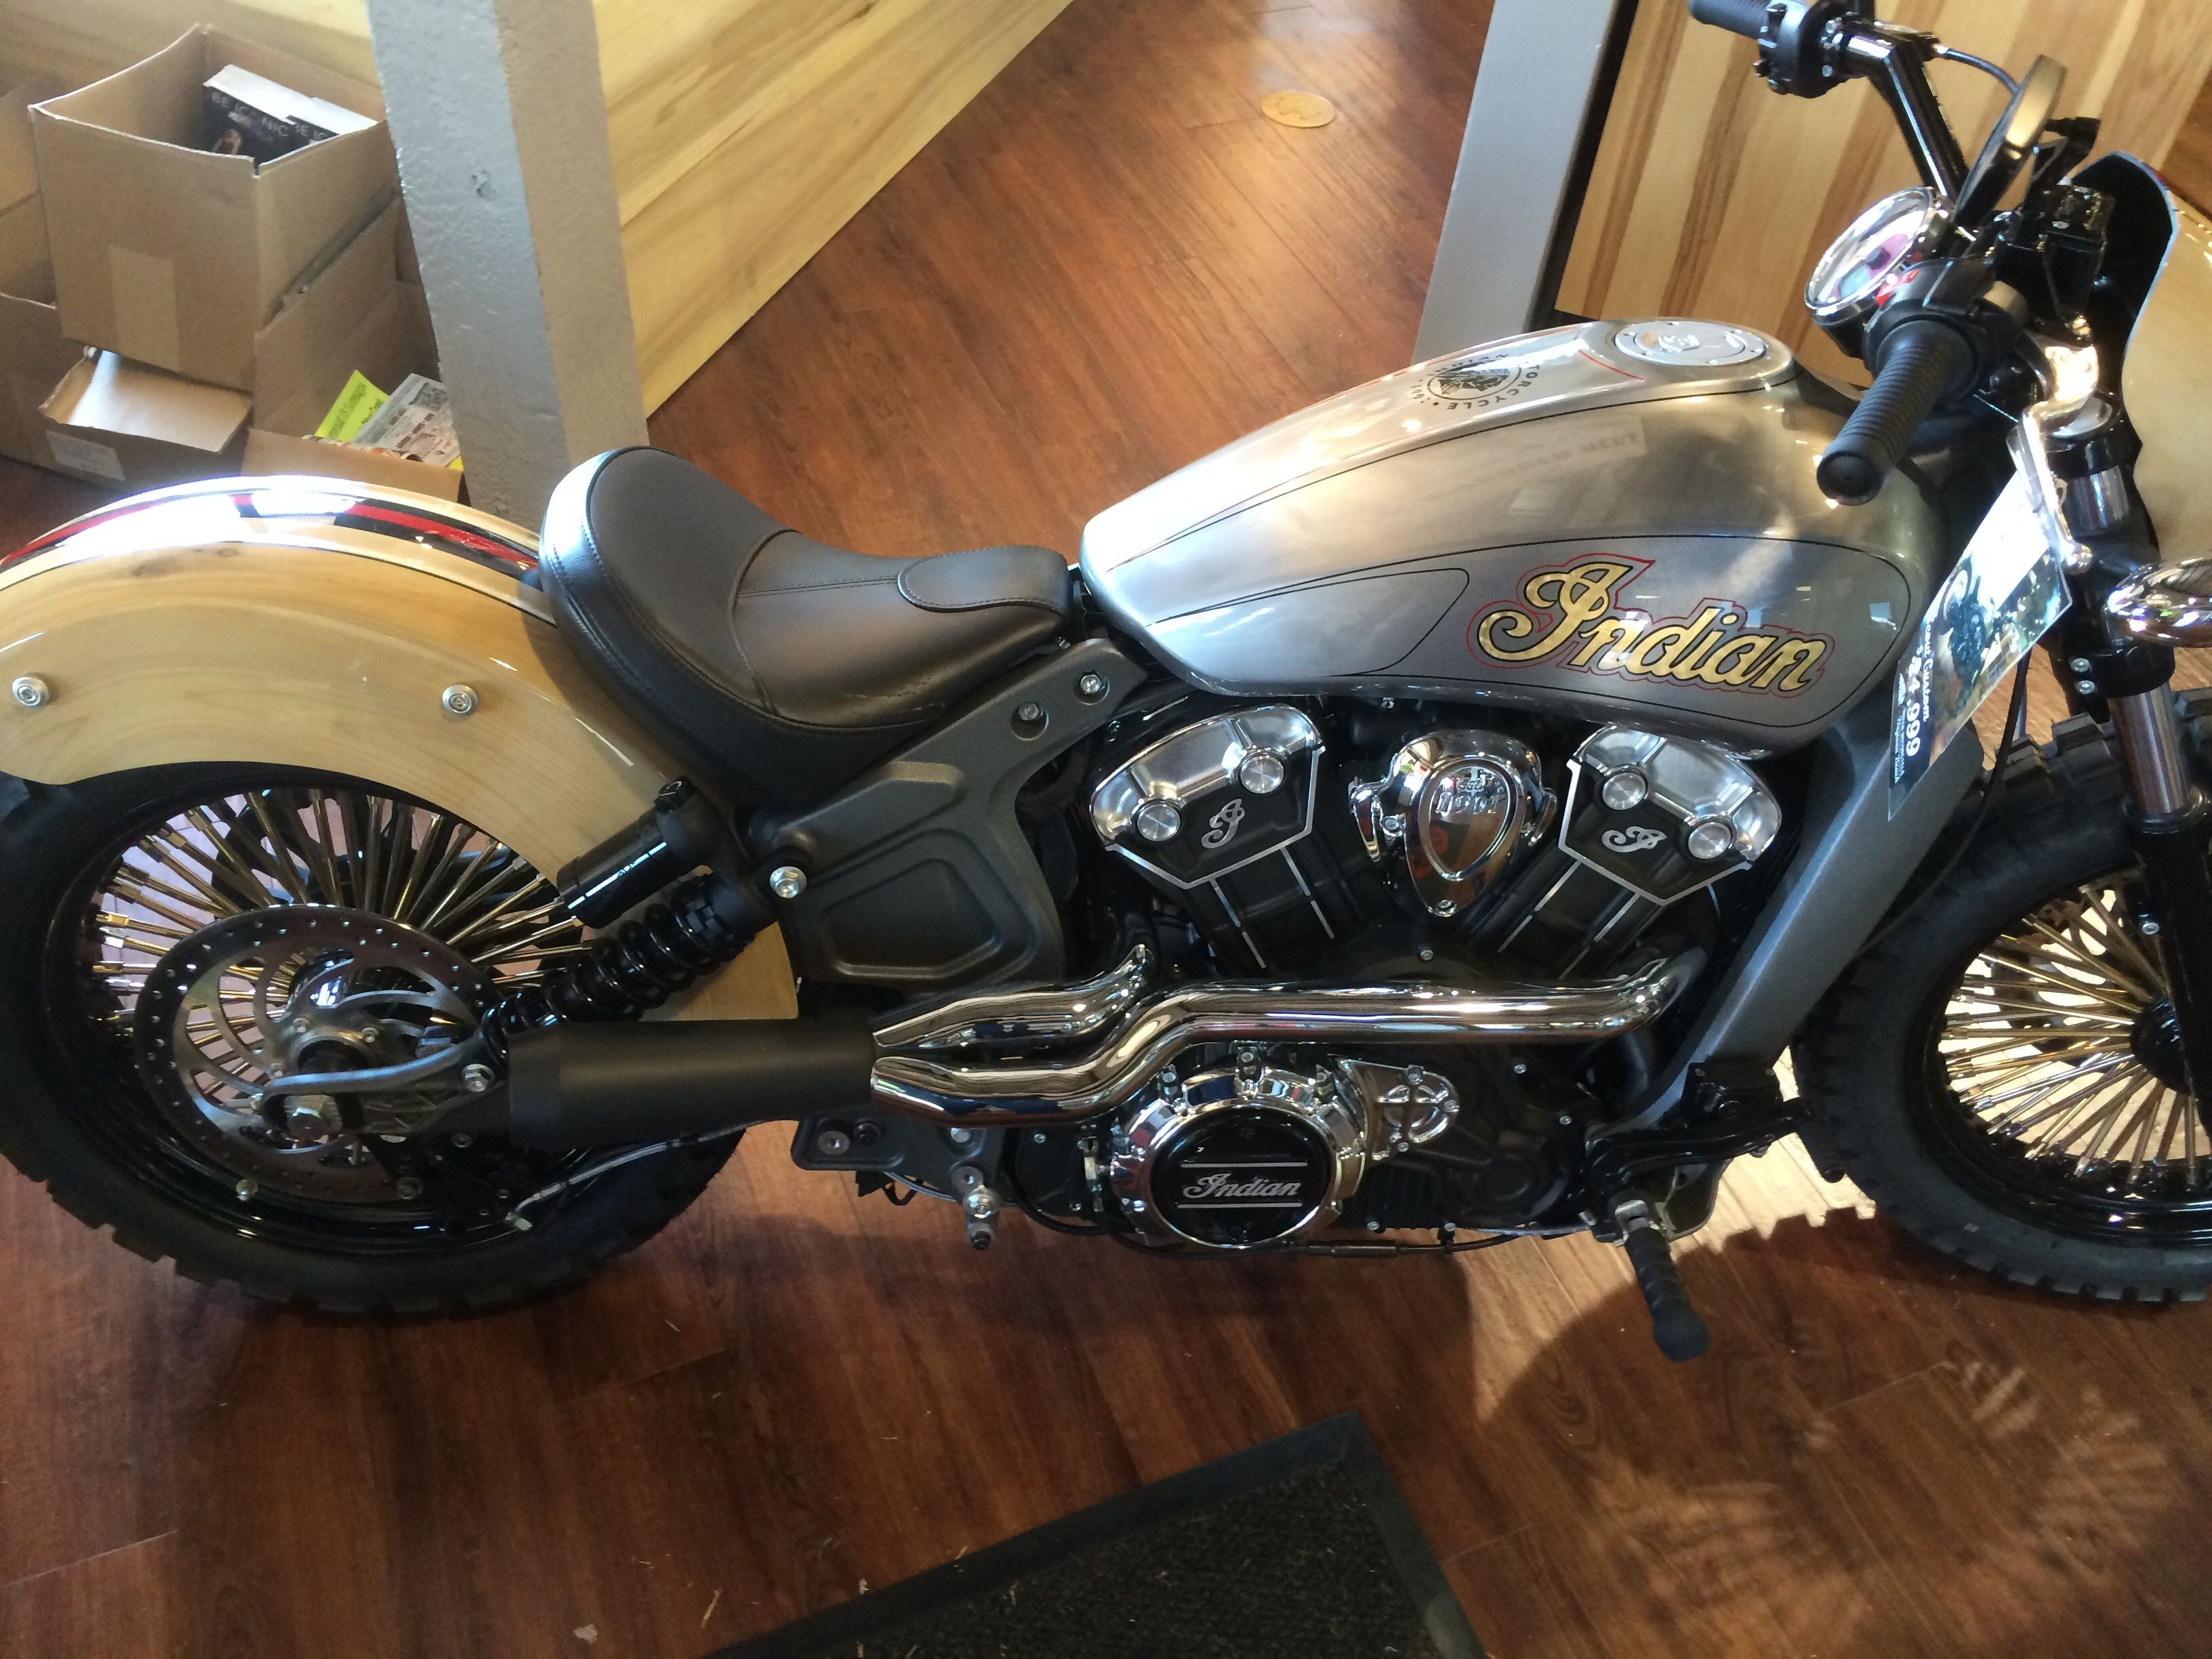 bbc0b33609d239e8d6da0b4b811382f8 custom bikes of the week 31 january, 2016 indian scout, scouts  at webbmarketing.co